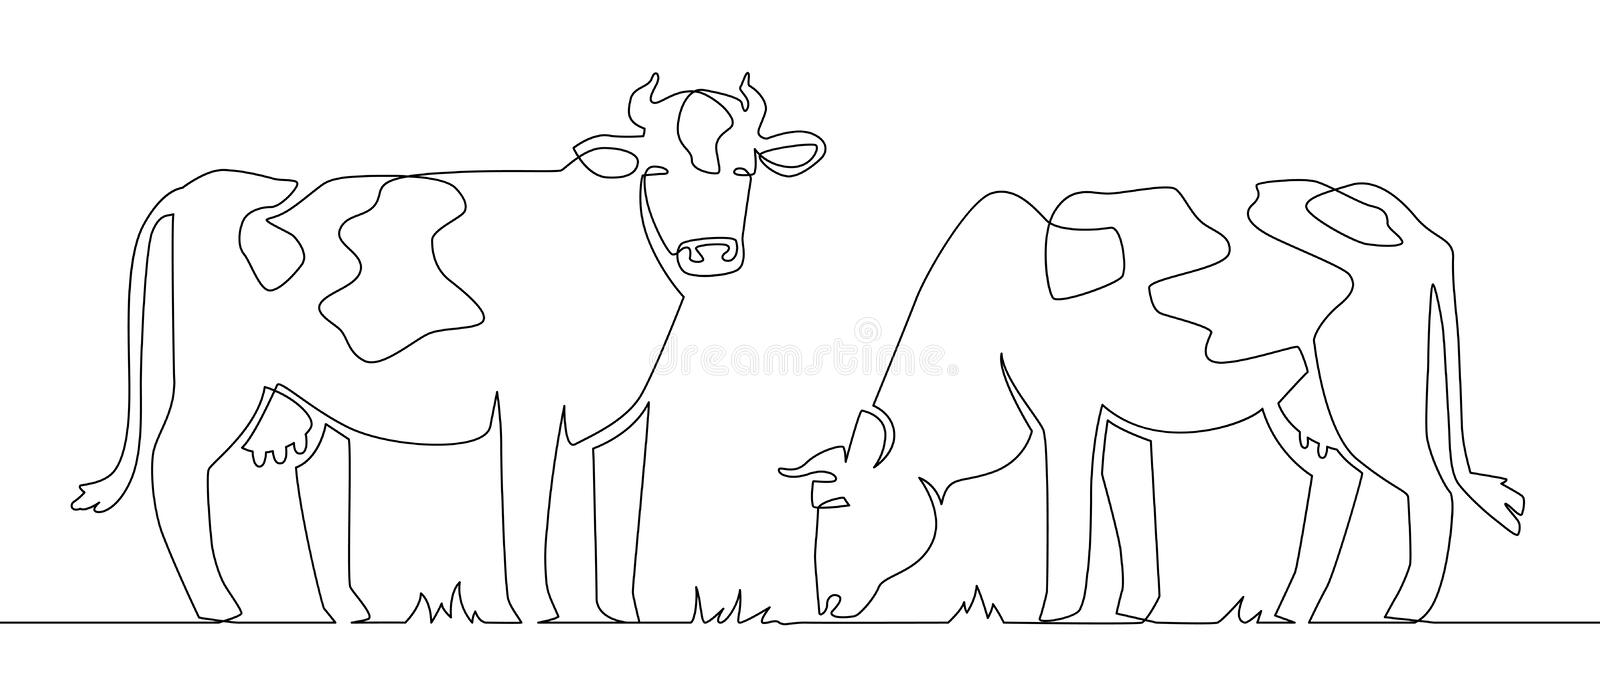 Animal Farm Vector Stock Illustrations 120 952 Animal Farm Vector Stock Illustrations Vectors Clipart Dreamstime